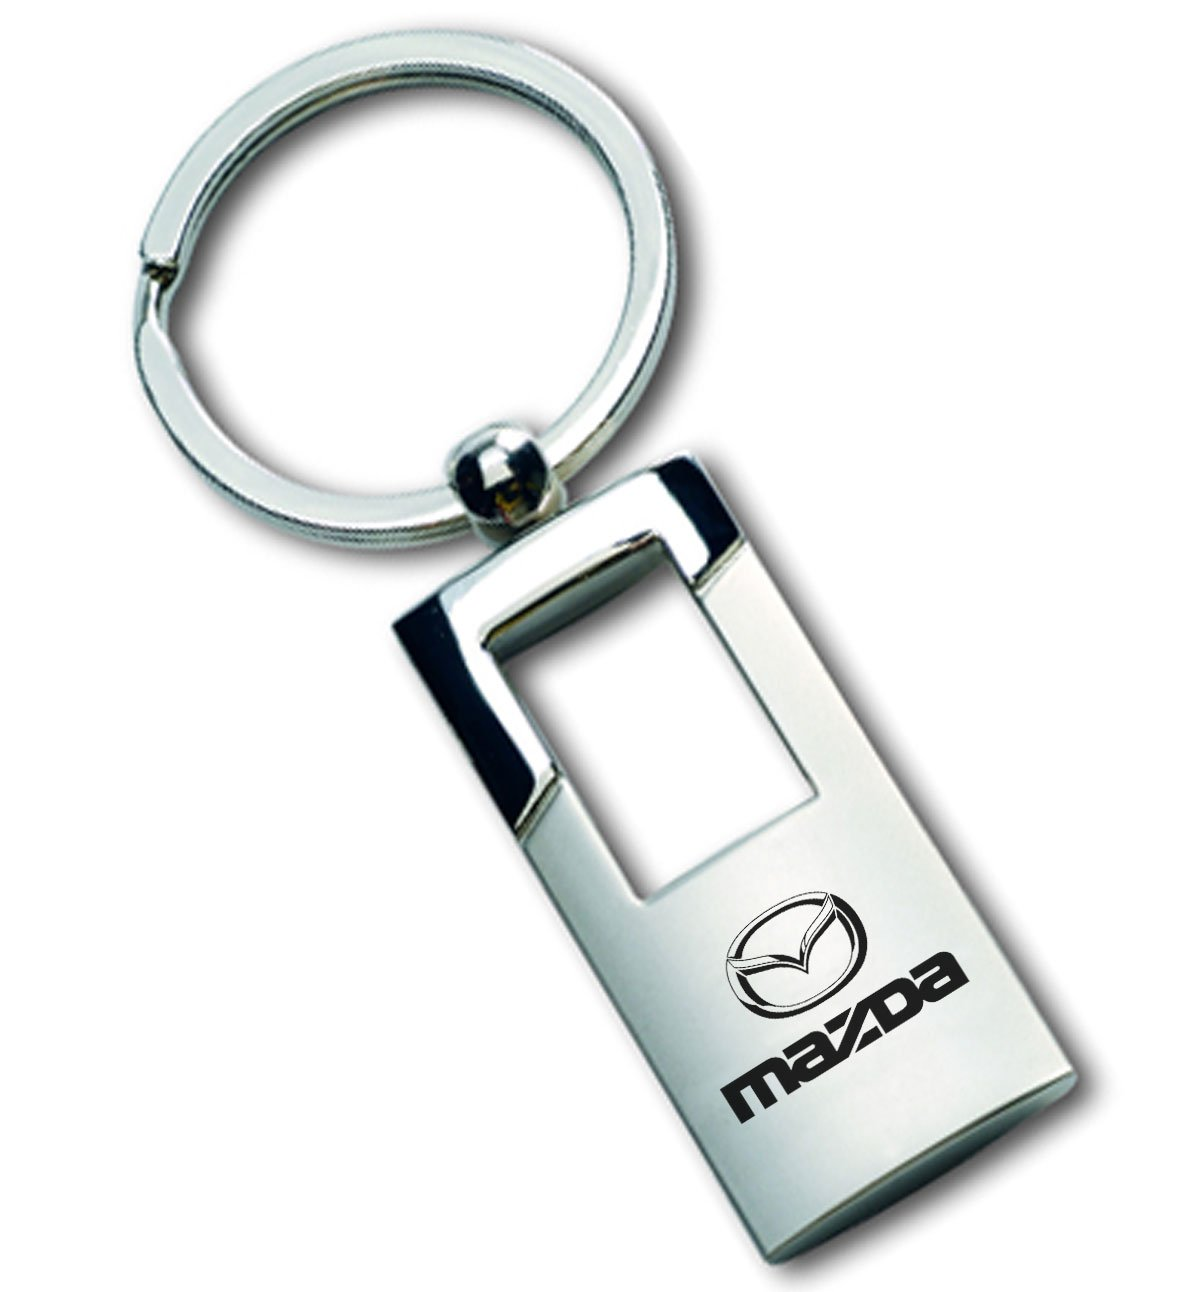 Gregs Automotive Mazda Chrome and Brushed Metal Key Chain Ring Fob with Racing Decal